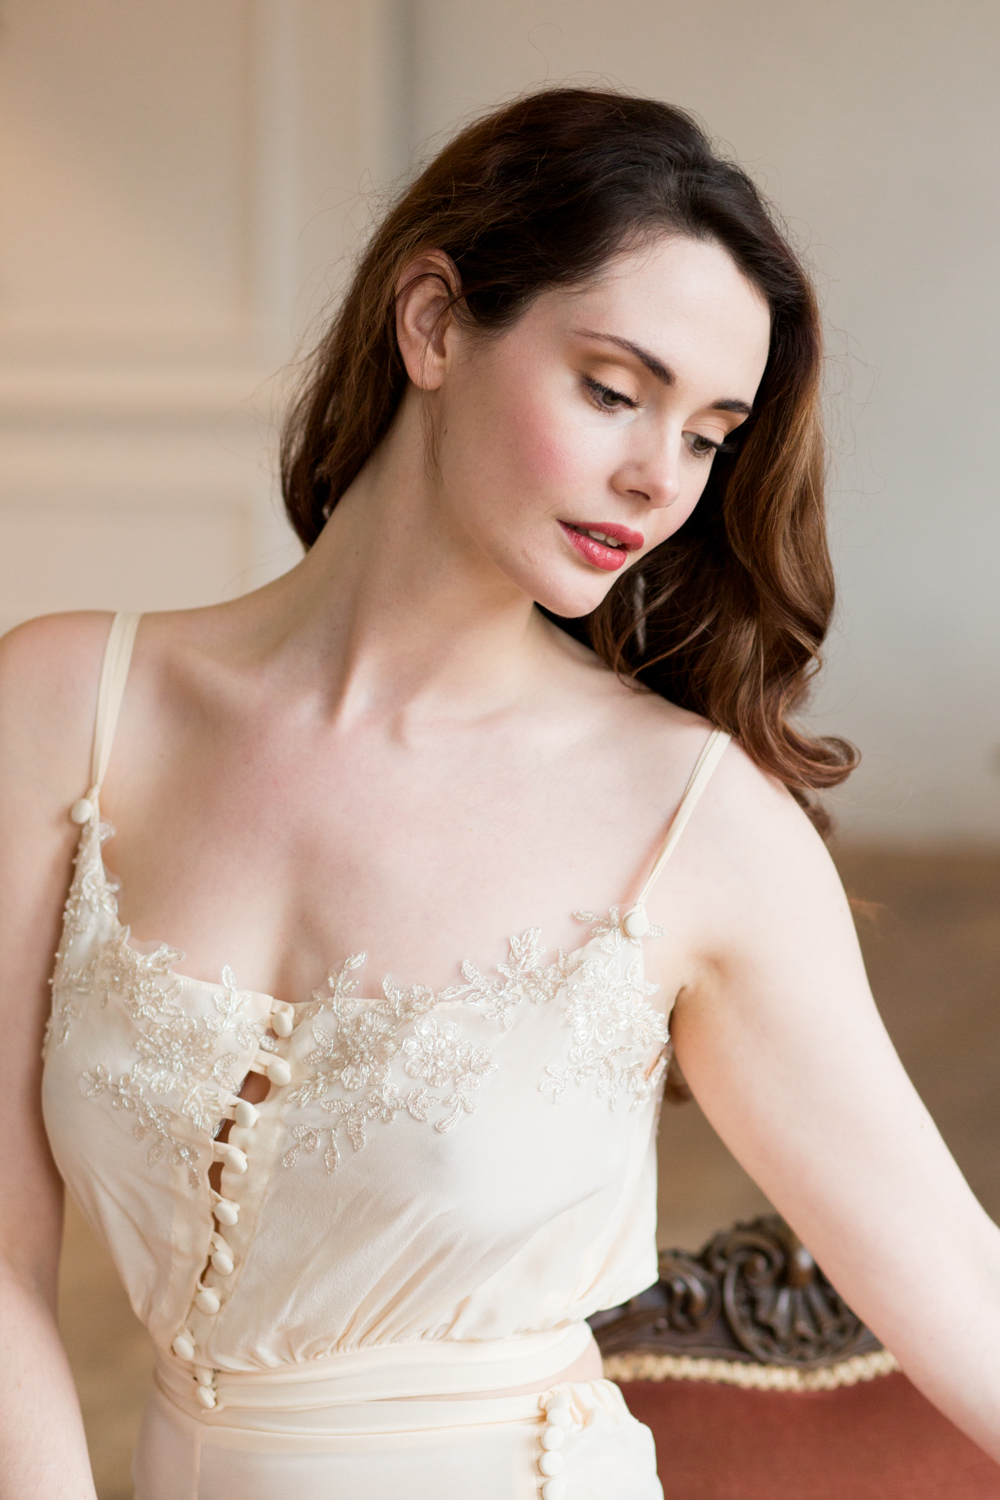 The Timeless Stylist - Wedding Lingerie - Editorial Shoot